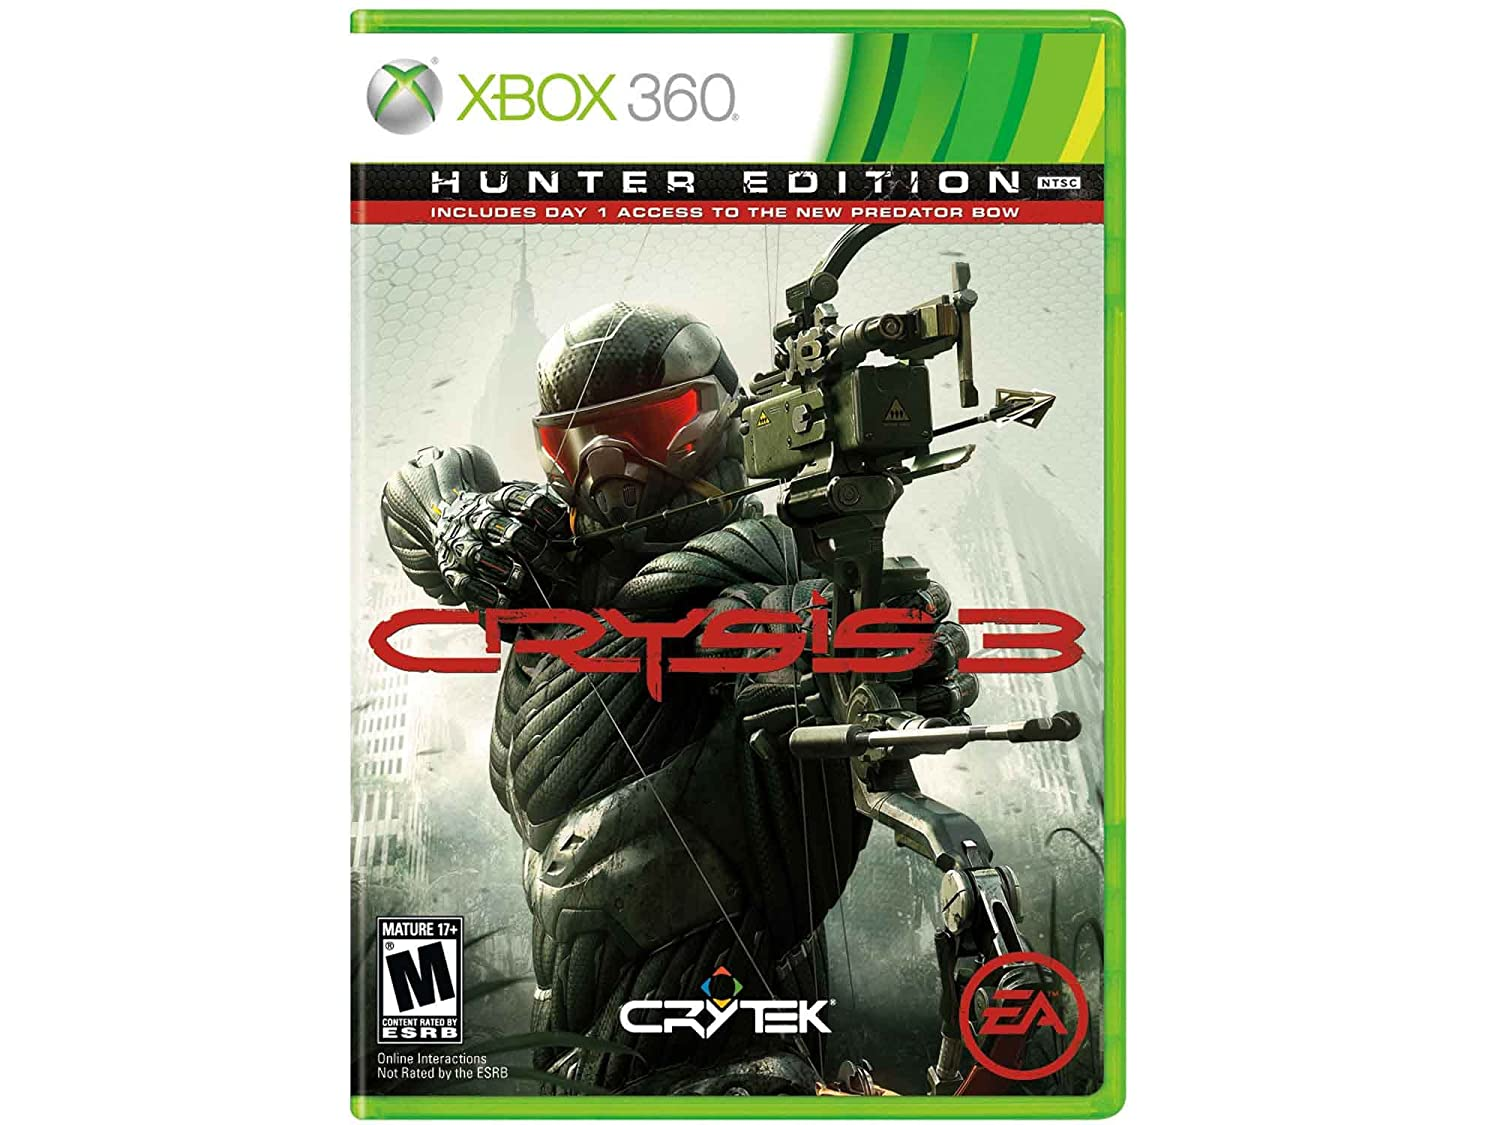 Crysis 3 - Super special price Safety and trust Xbox 360